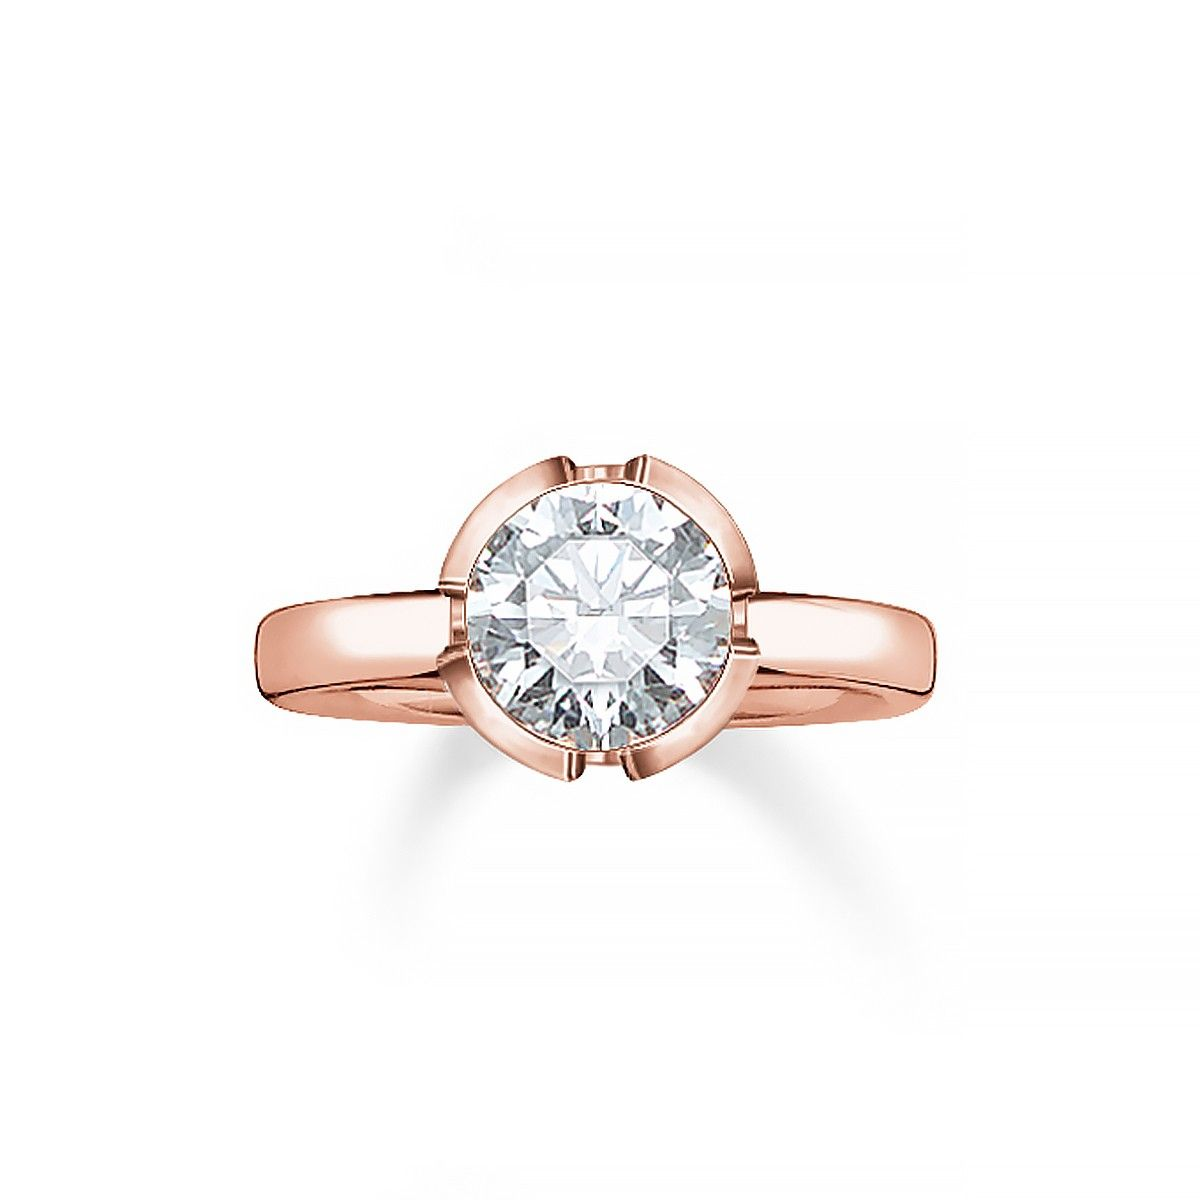 Thomas Sabo White Zirconia Sterling Silver Rose Gold Plated Ring 129 Engagement Rings Rose Gold Plated Ring Thomas Sabo